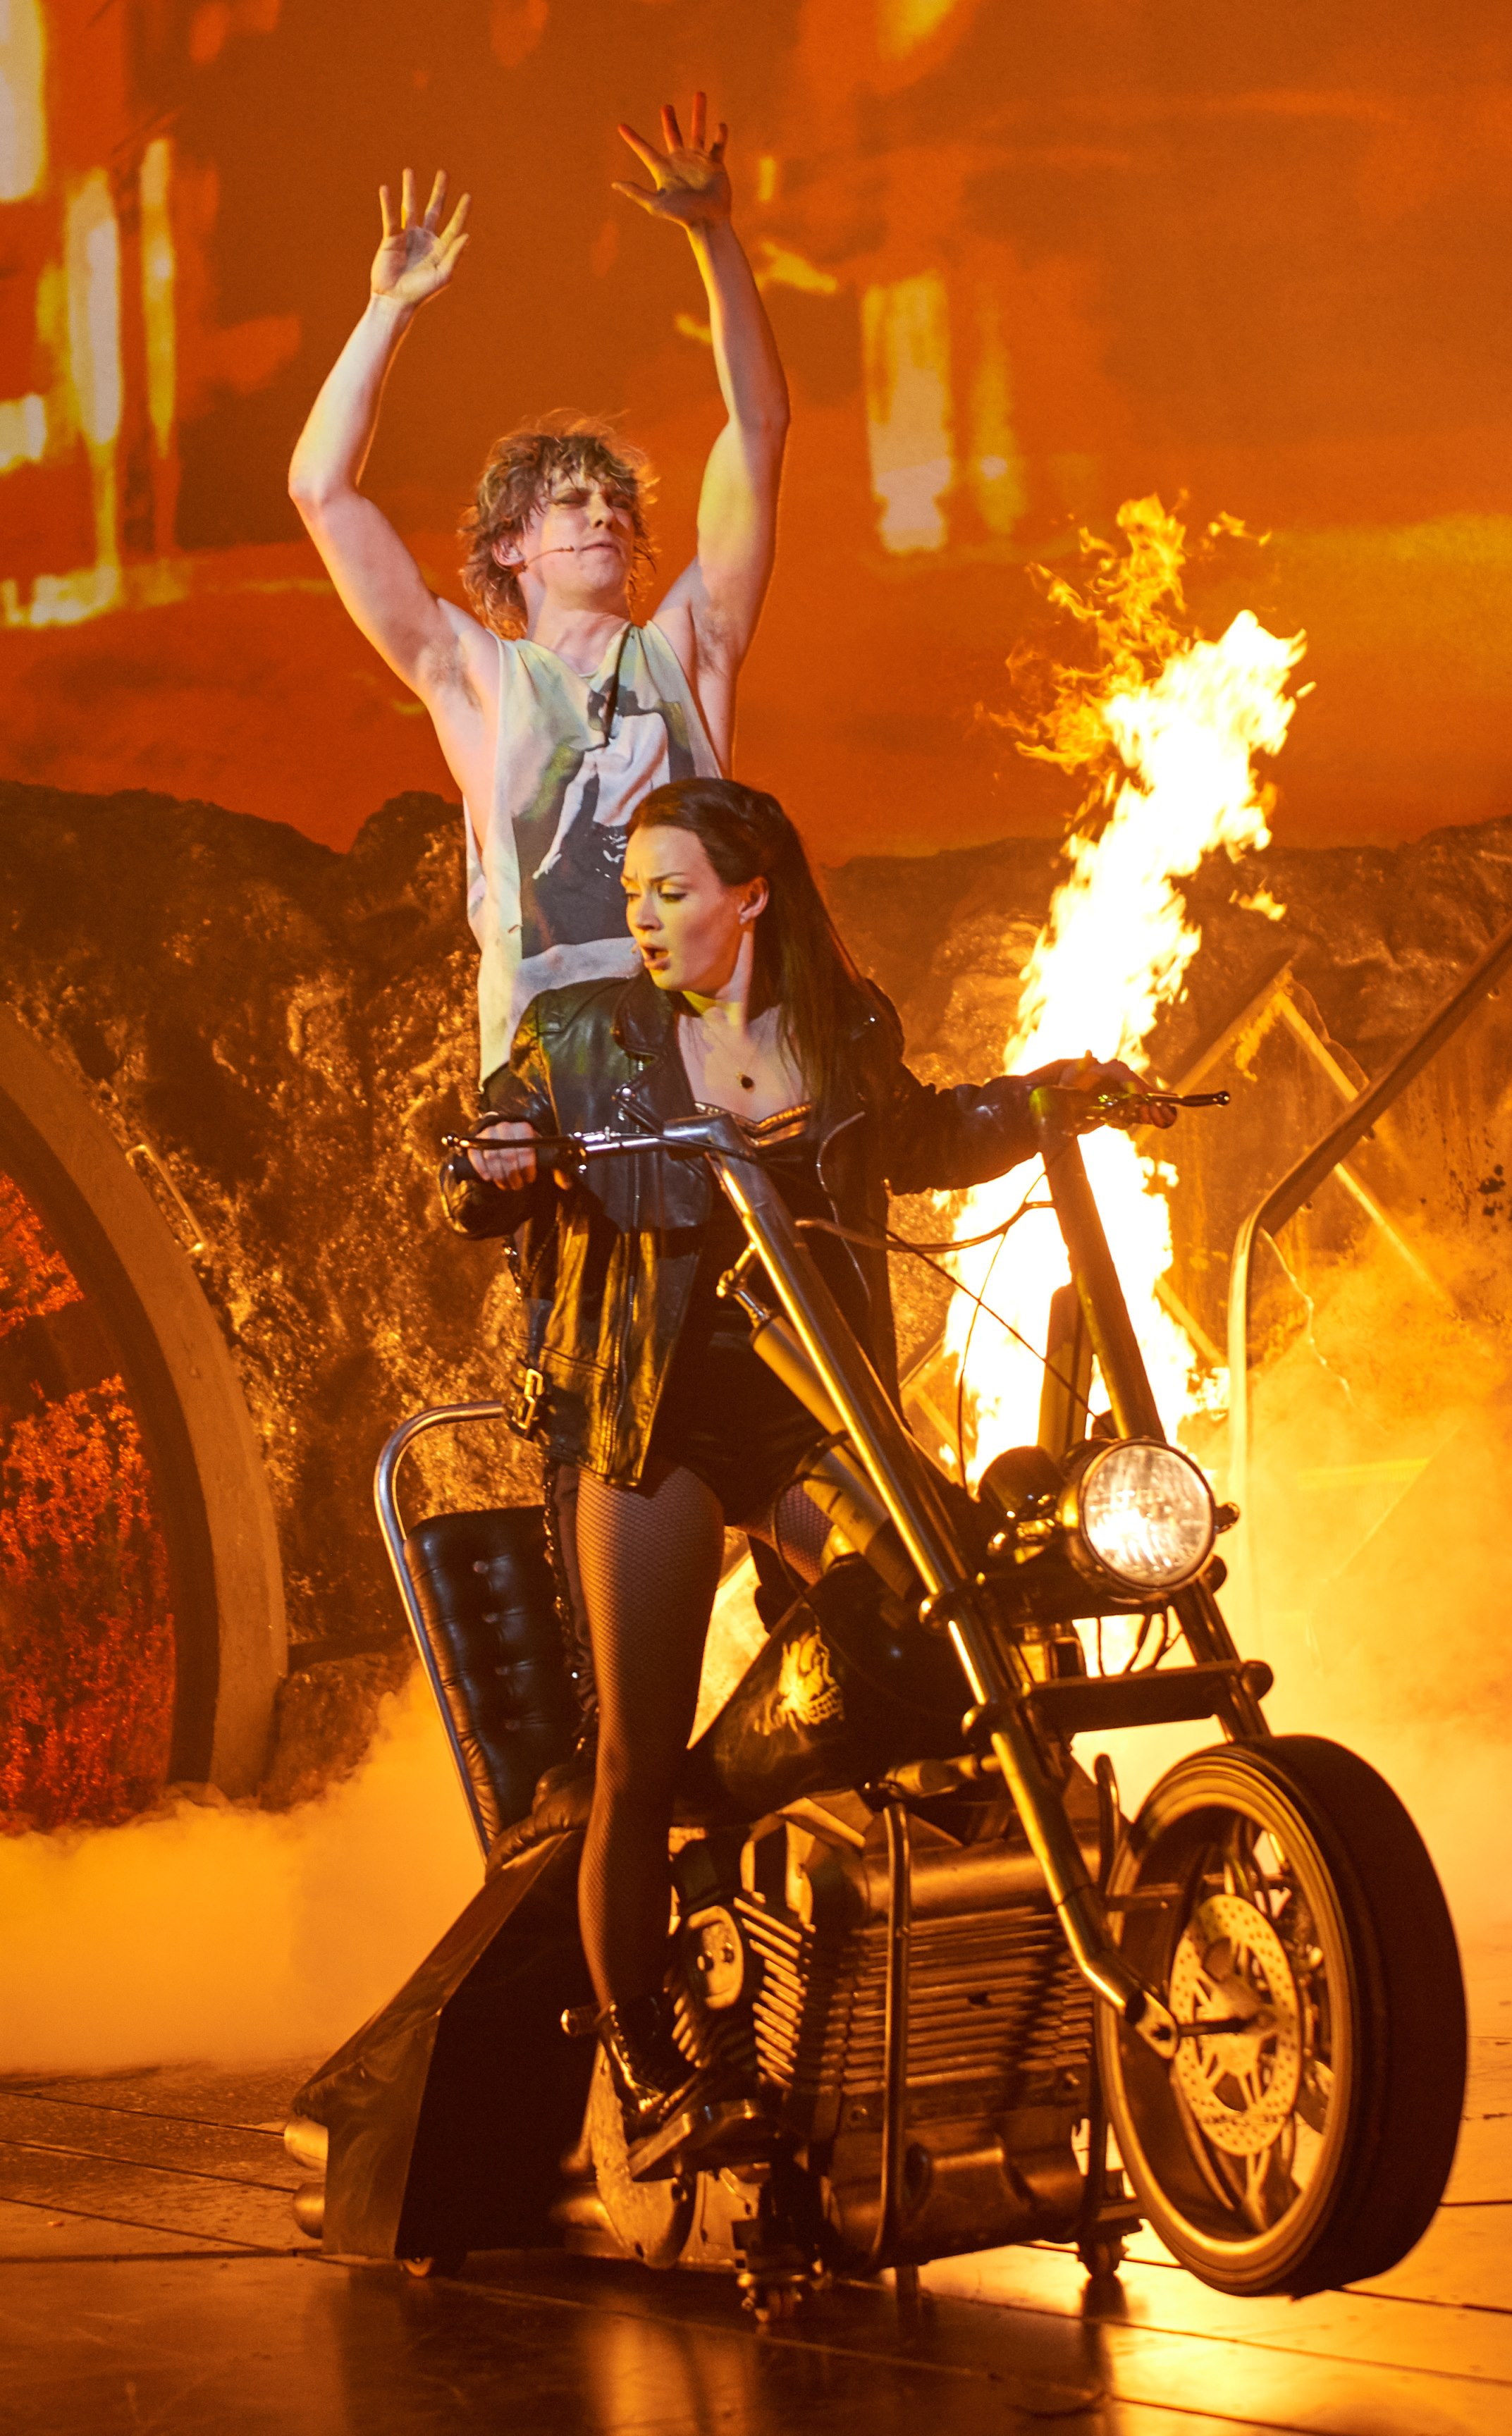 Andrew Polec as Strat & Christina Bennington as Raven in BAT OUT OF HELL credit Specular (3)